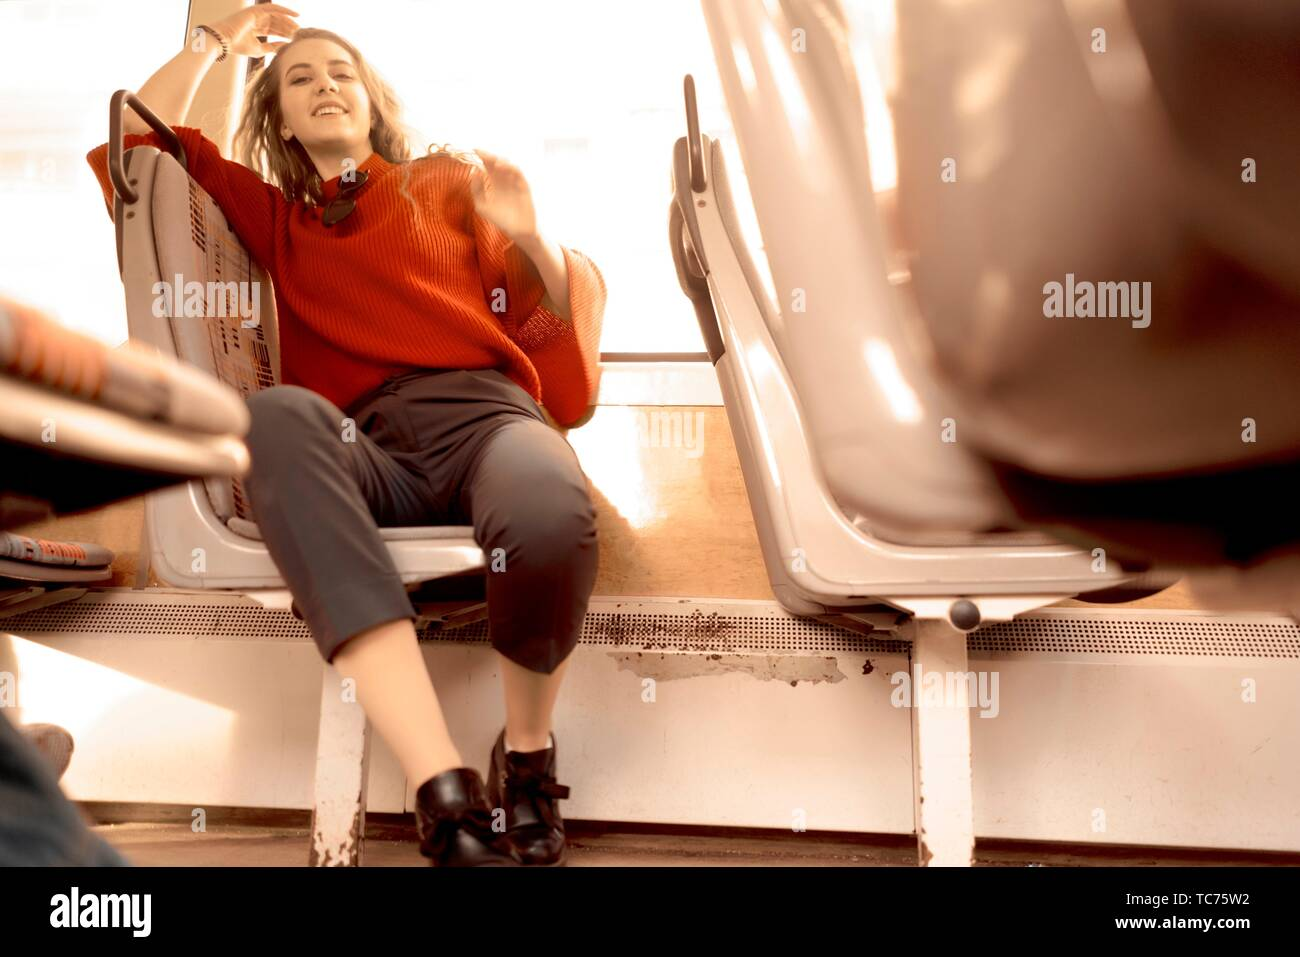 young woman sitting in public transport, in city Cottbus, Brandenburg, Germany. Stock Photo